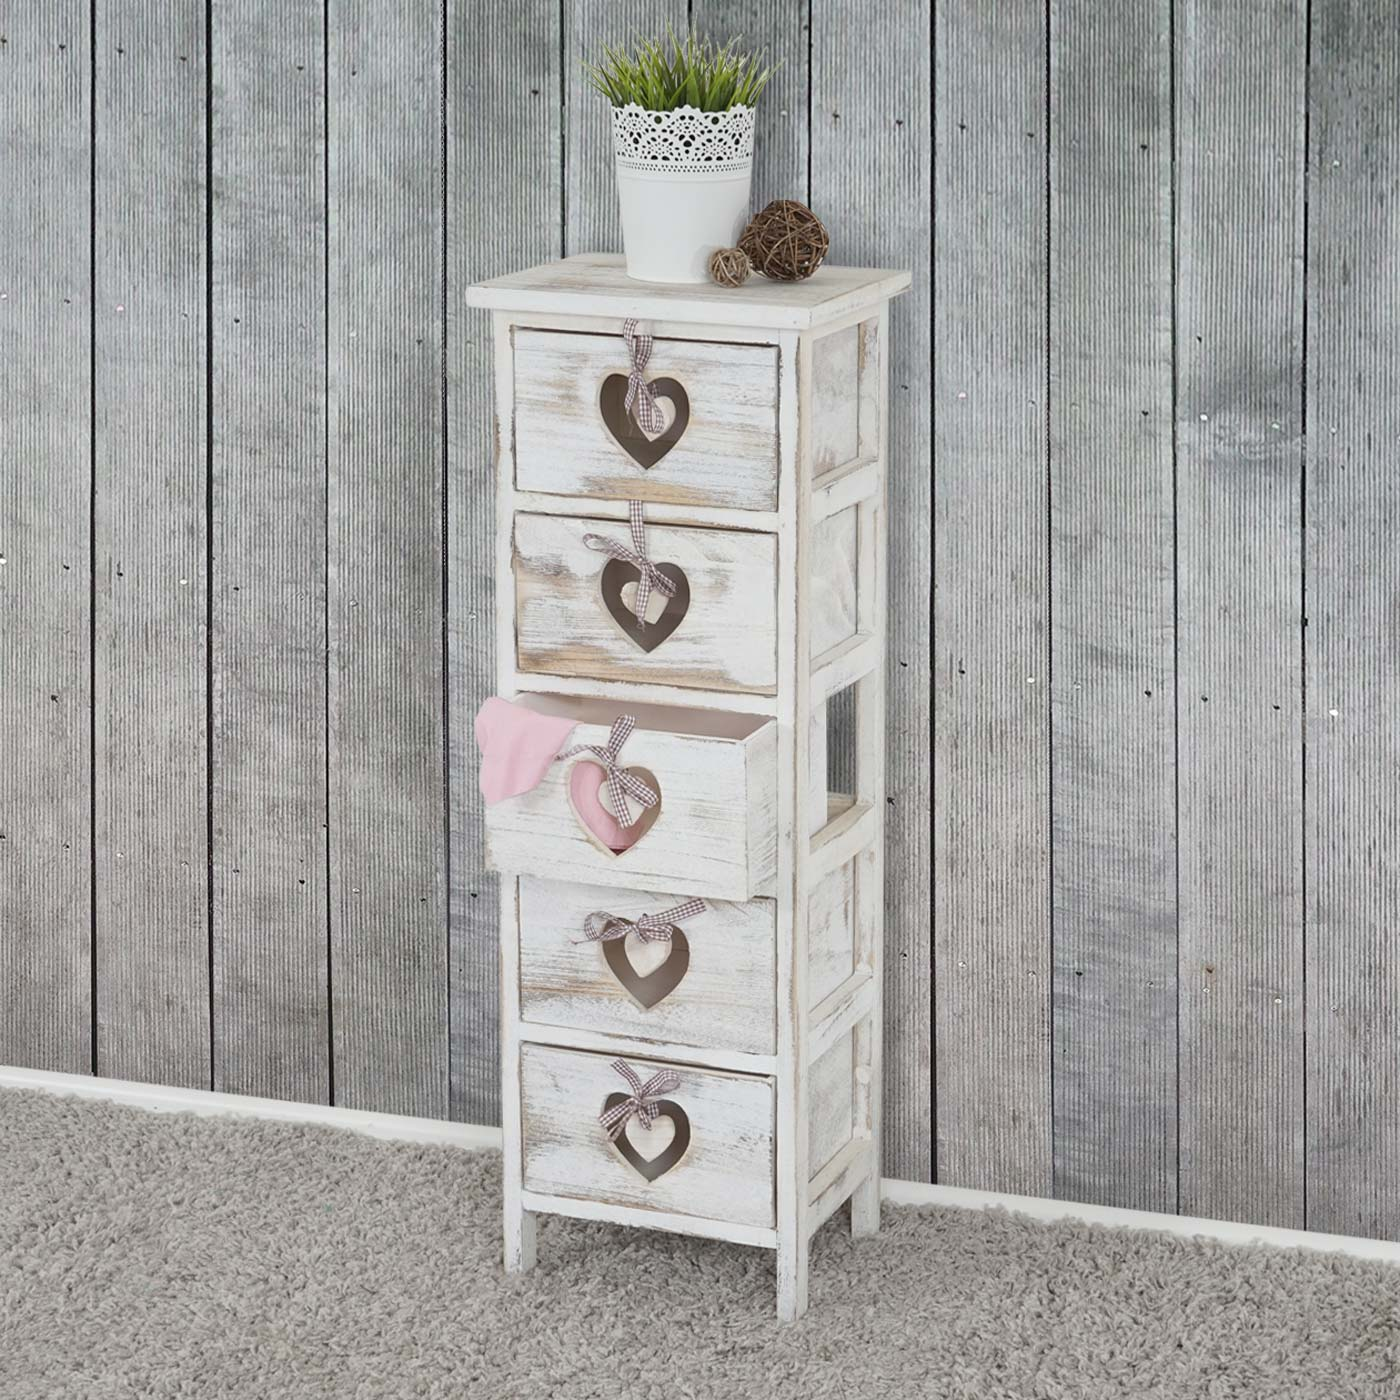 kommode forli schubladenkommode schrank 5 schubladen mit herzen 86x29x25cm shabby look vintage. Black Bedroom Furniture Sets. Home Design Ideas